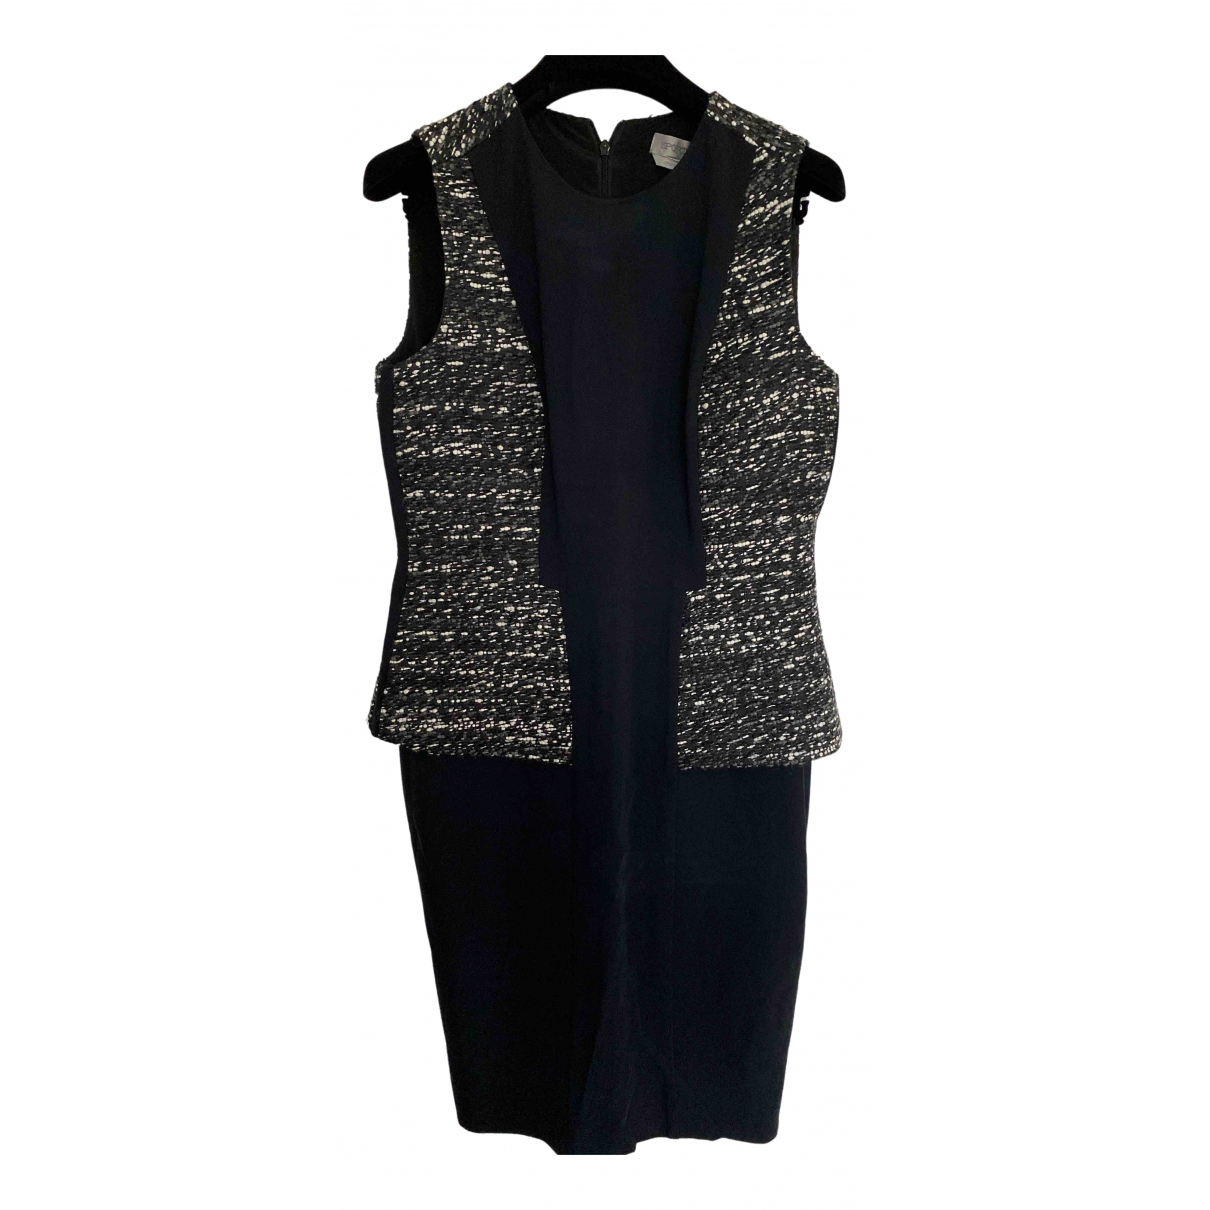 Sport Max \N Black dress for Women L International